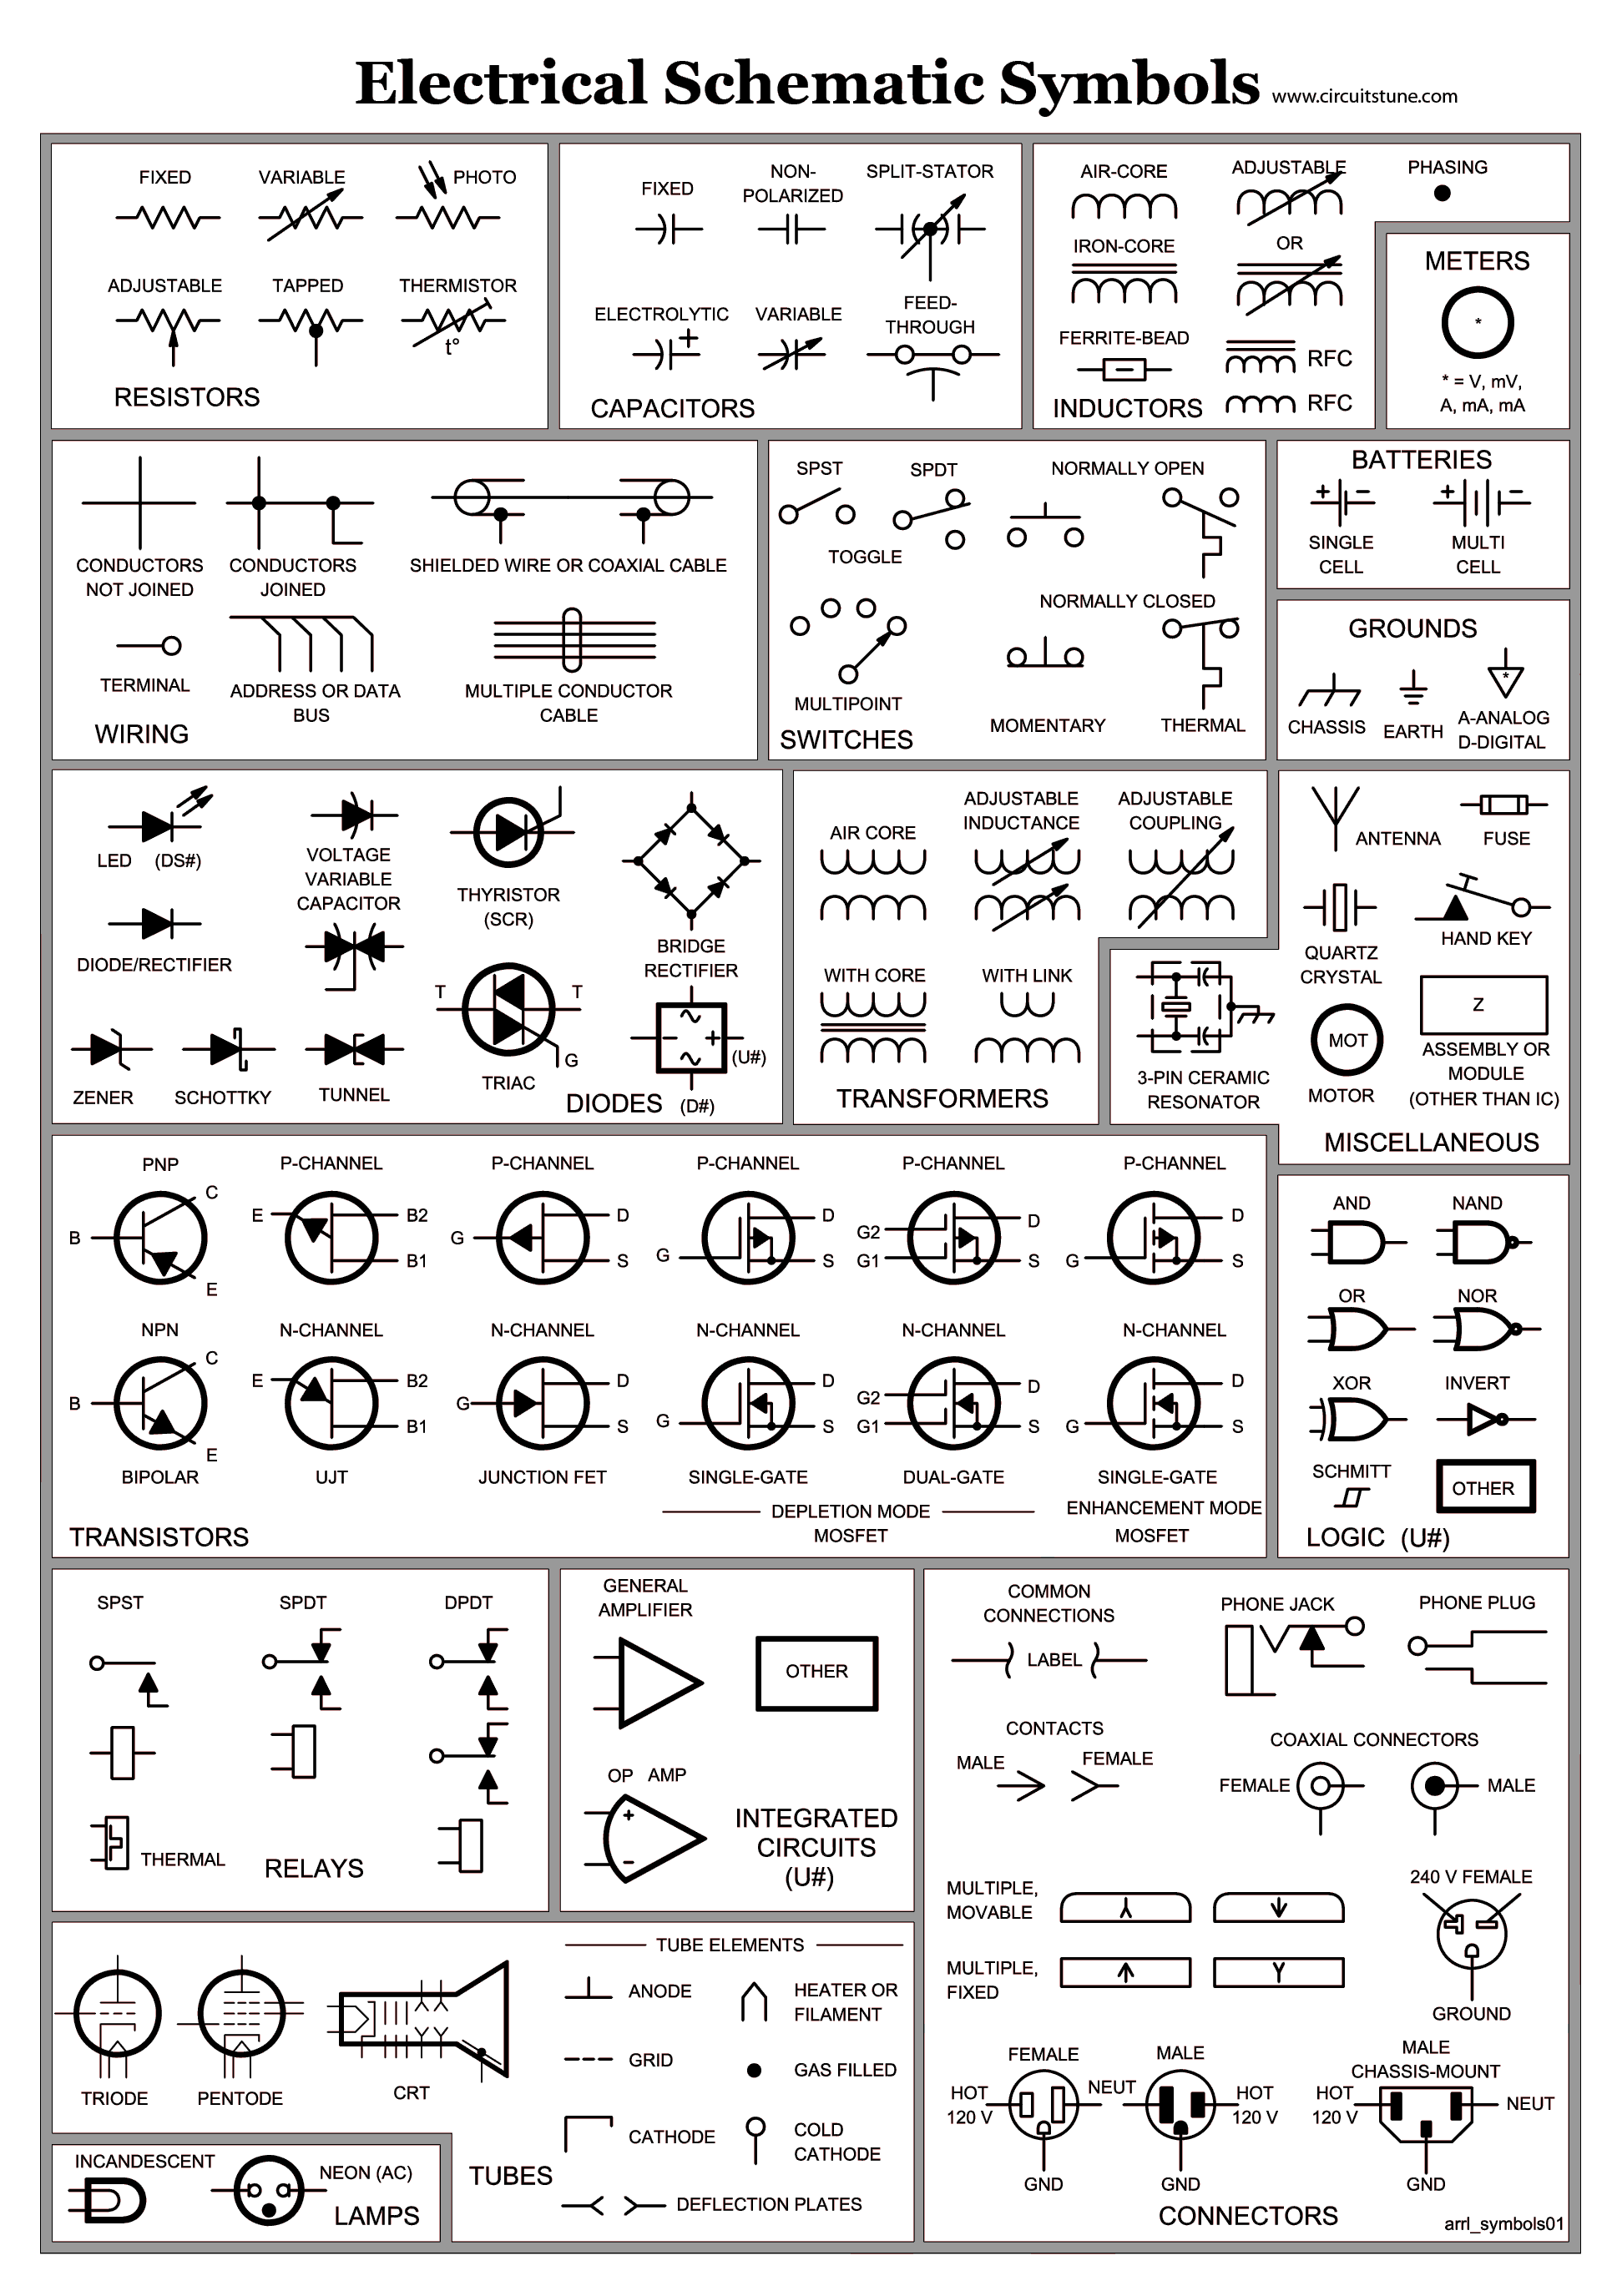 Boeing Wiring Diagram Schematic Symbols | Wiring Diagram on boeing engine, boeing fuel tank, boeing dimensions, boeing wiring symbols, boeing assembly, boeing wiring design, boeing exploded view, boeing antenna,